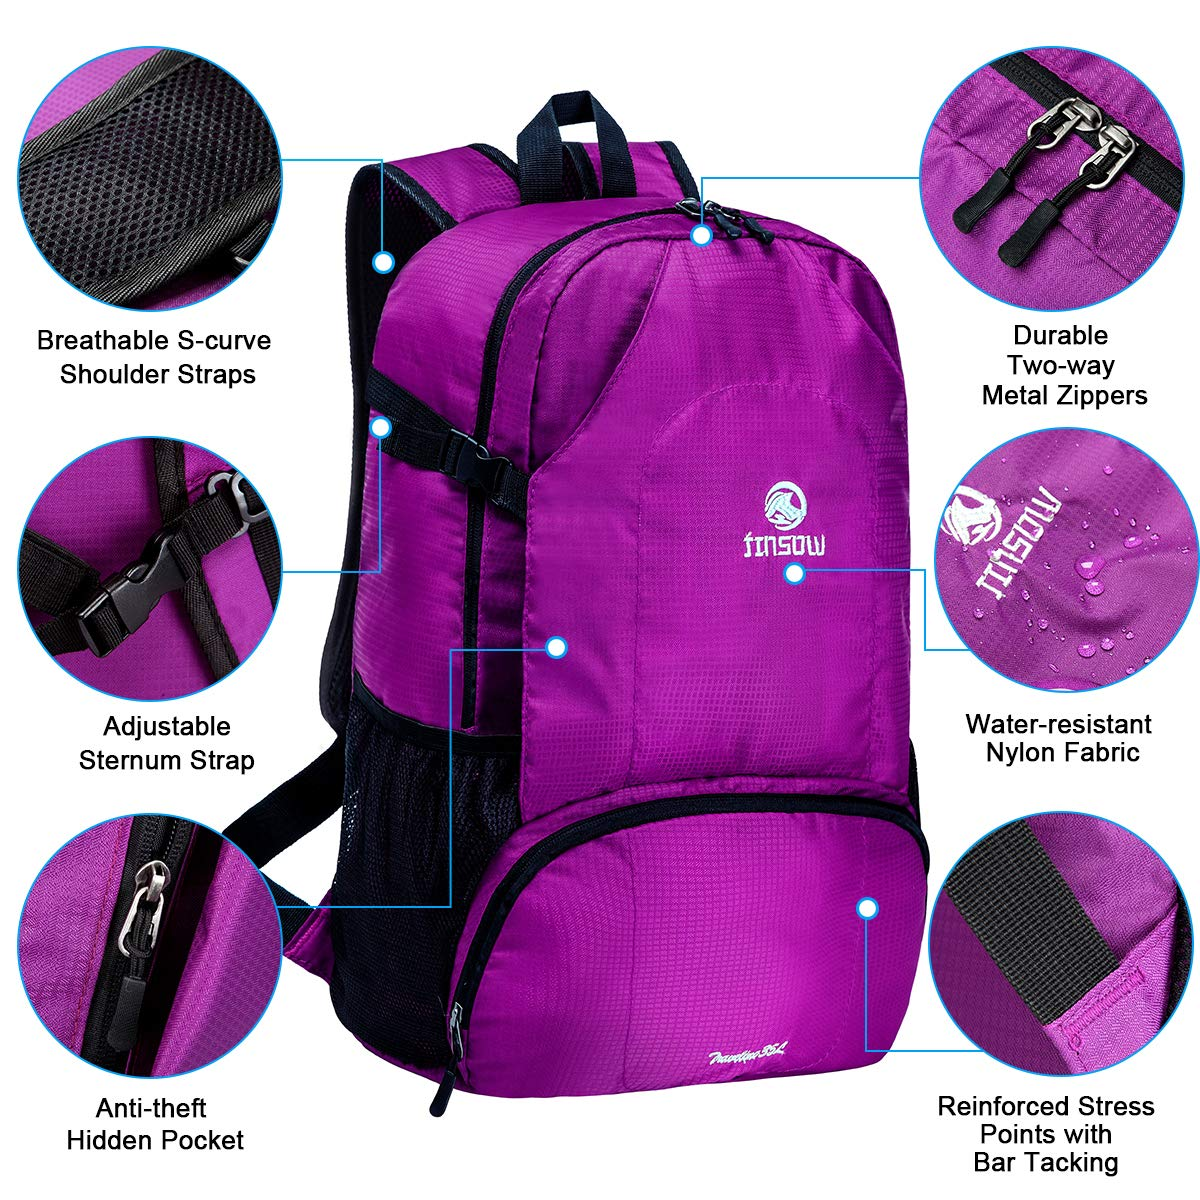 JINSOW 35L Lightweight Packable Hiking Backpack Daypack, Water Resistant Foldable Large Bags Travel Camping Outdoor Backpacks for Women Men Boys Girls Purple by JINSOW (Image #4)